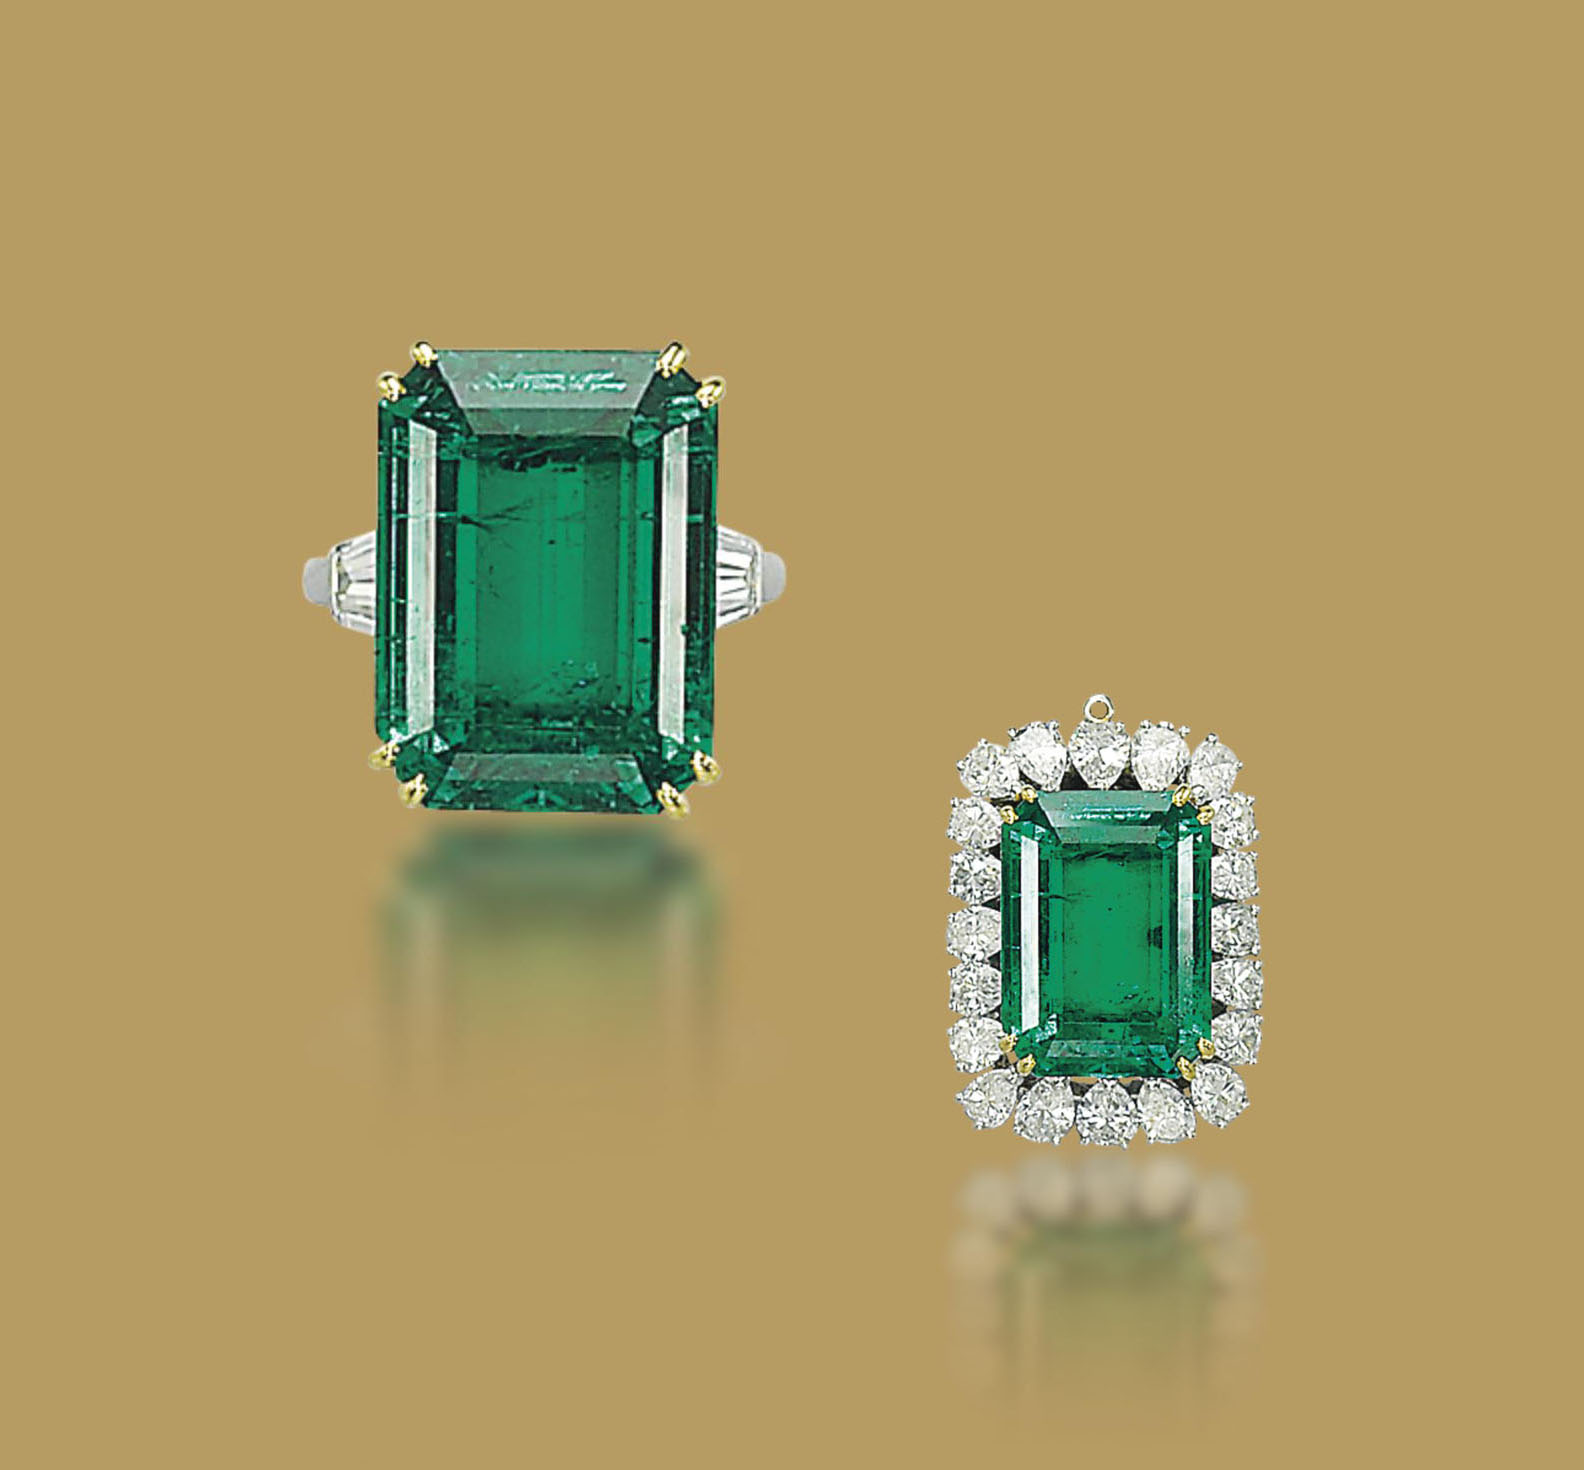 AN EMERALD AND DIAMOND RING, BY M. GÉRARD